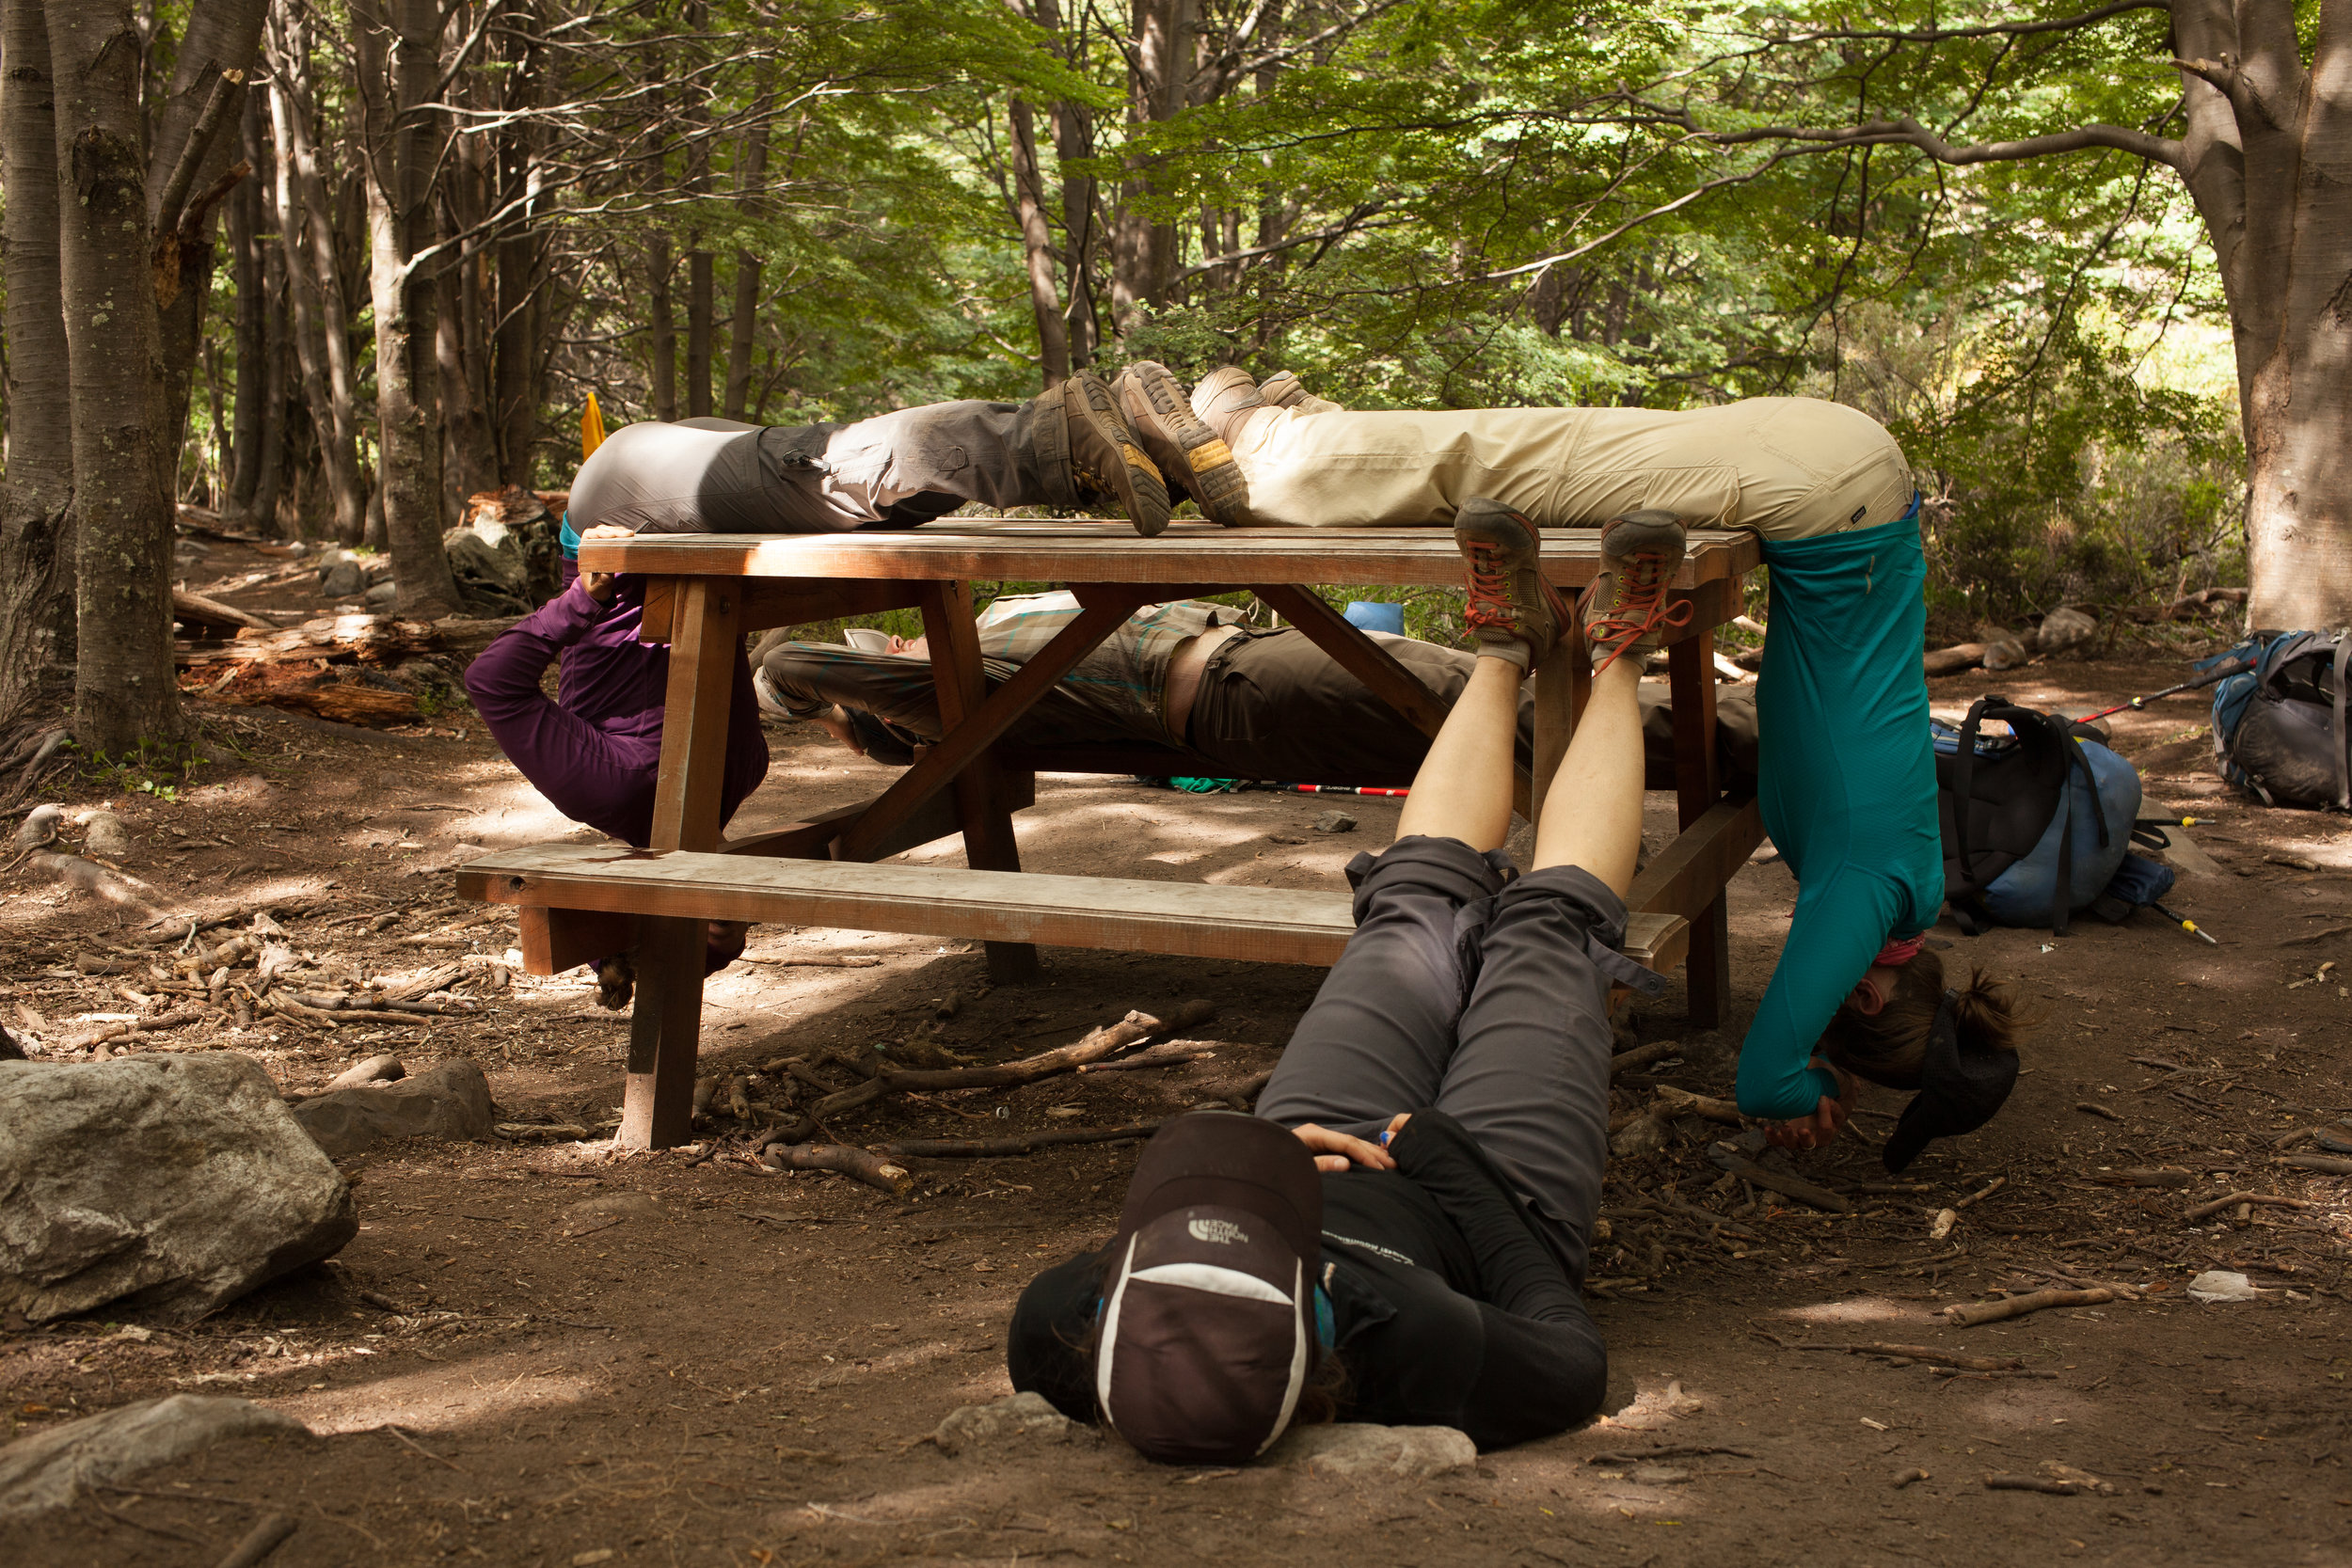 Picnic table yoga.